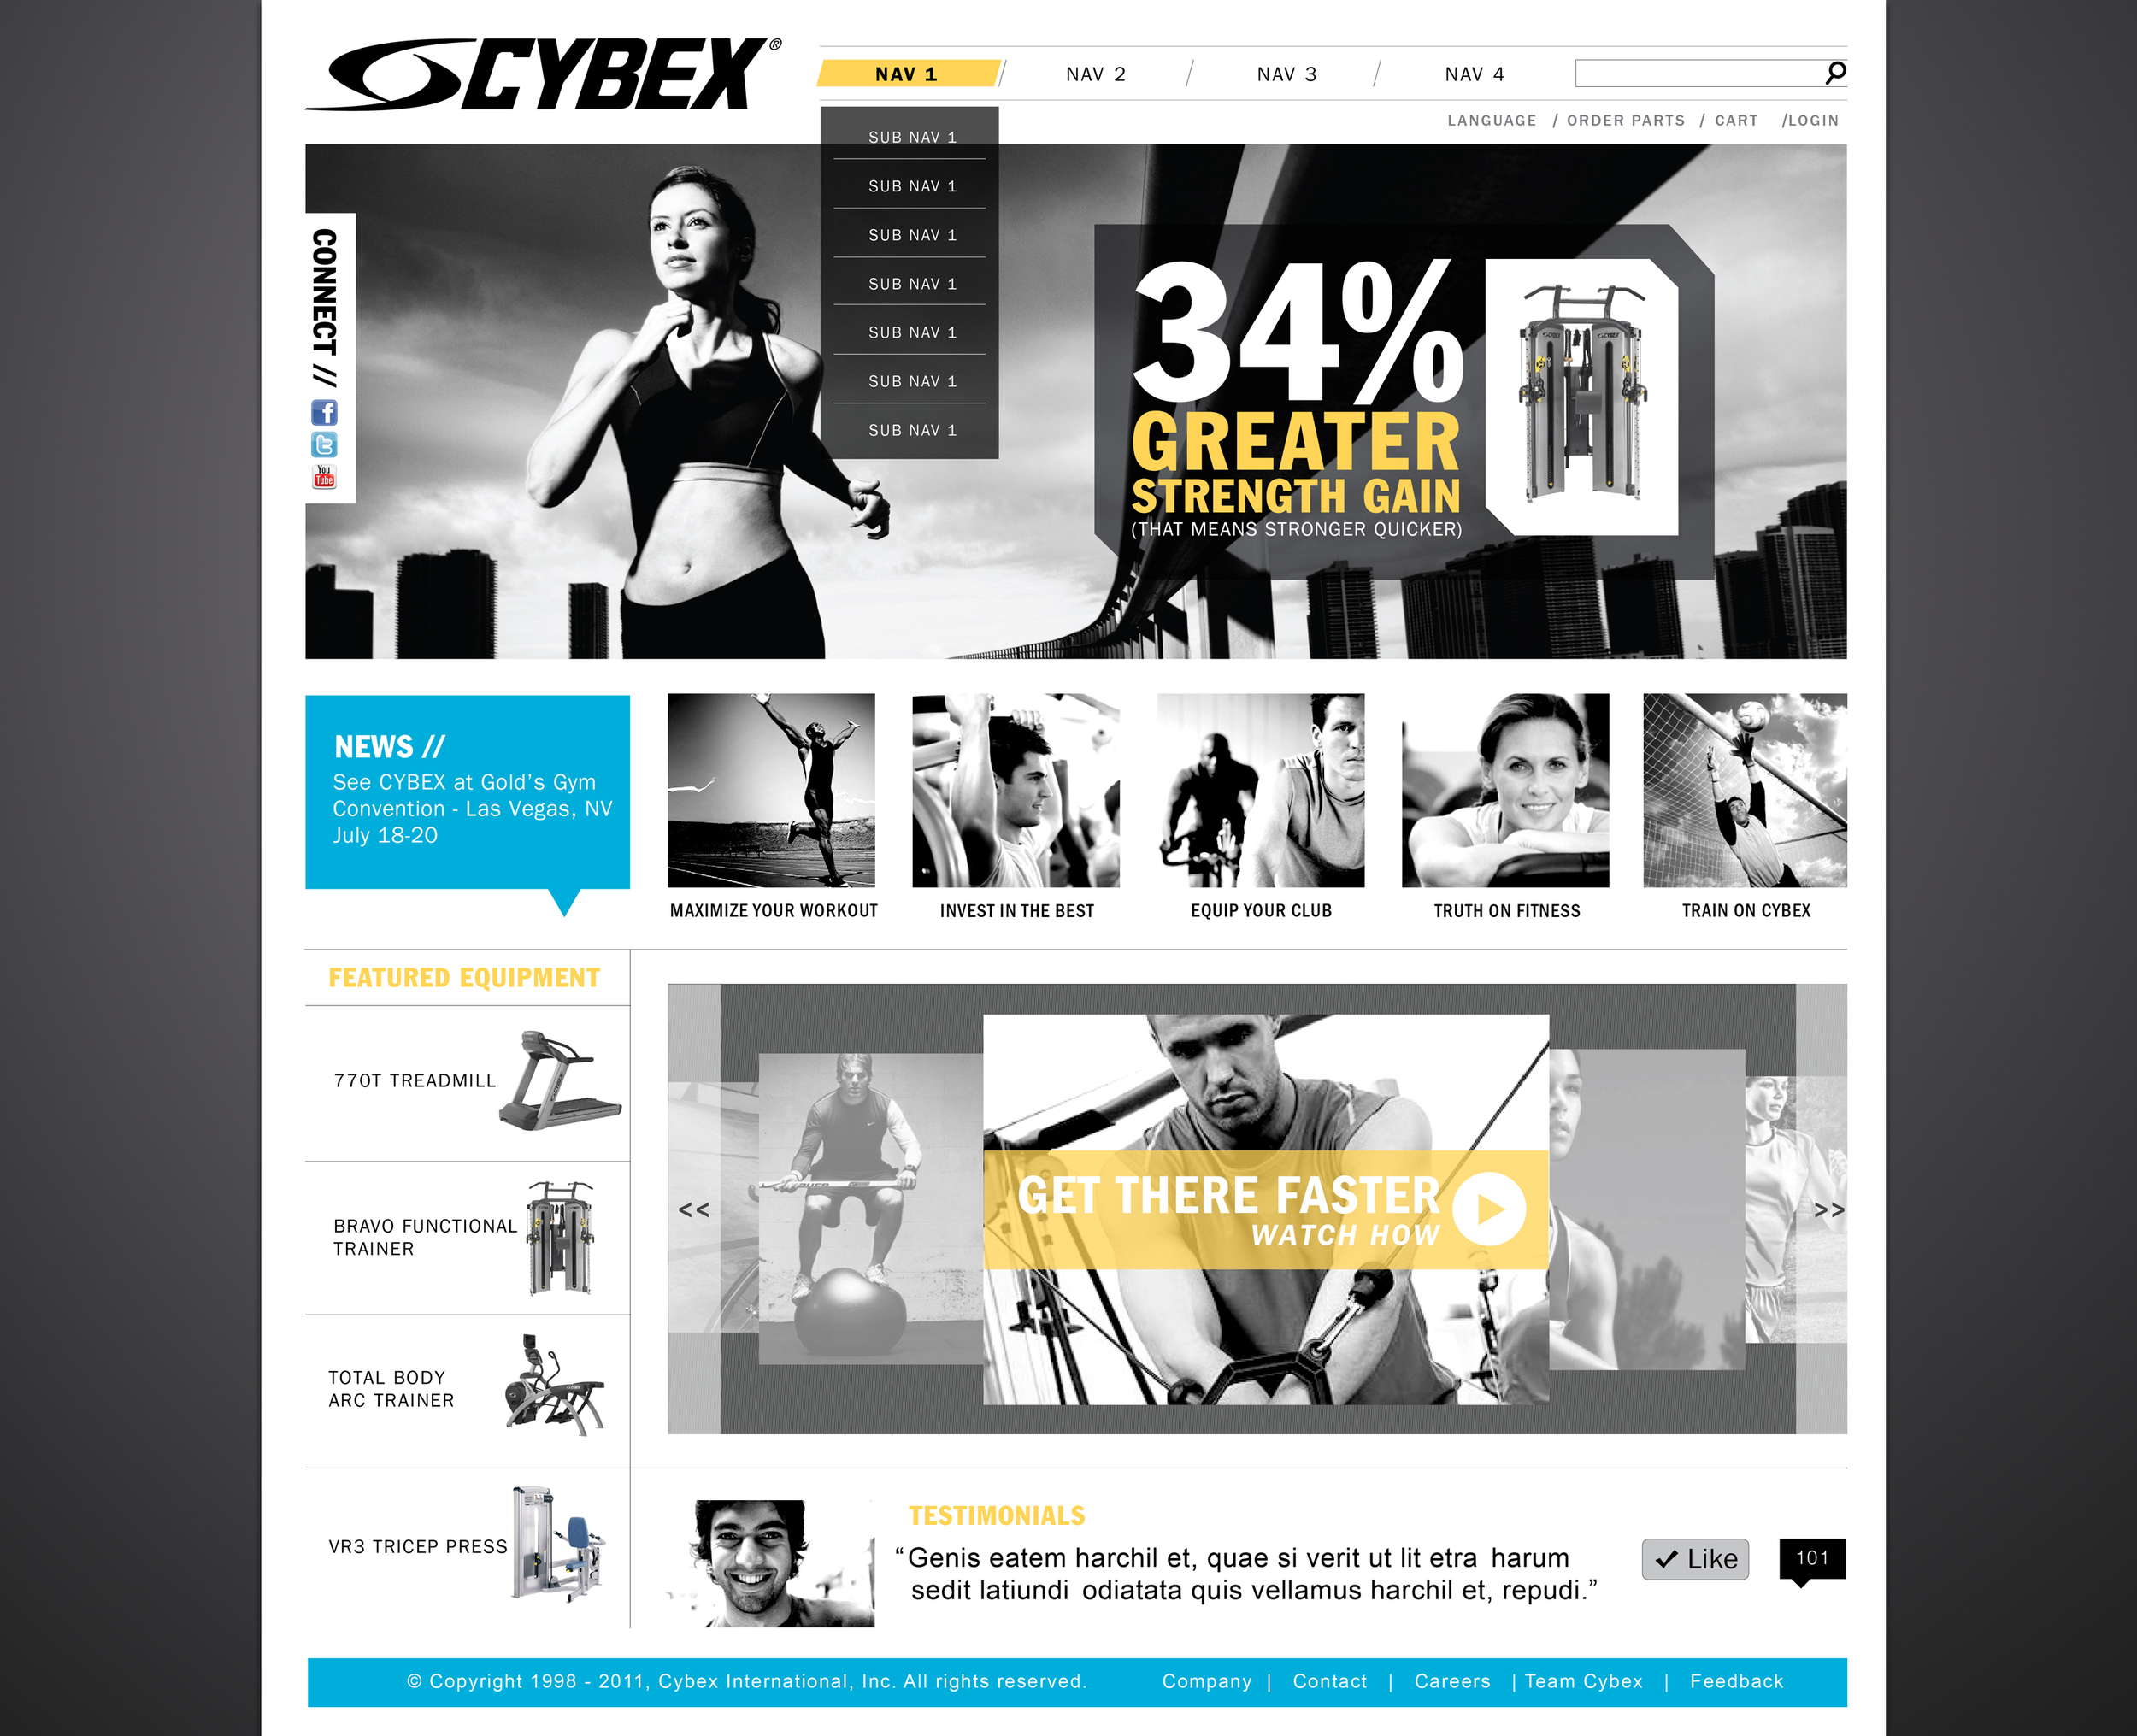 mdg_cybex_website